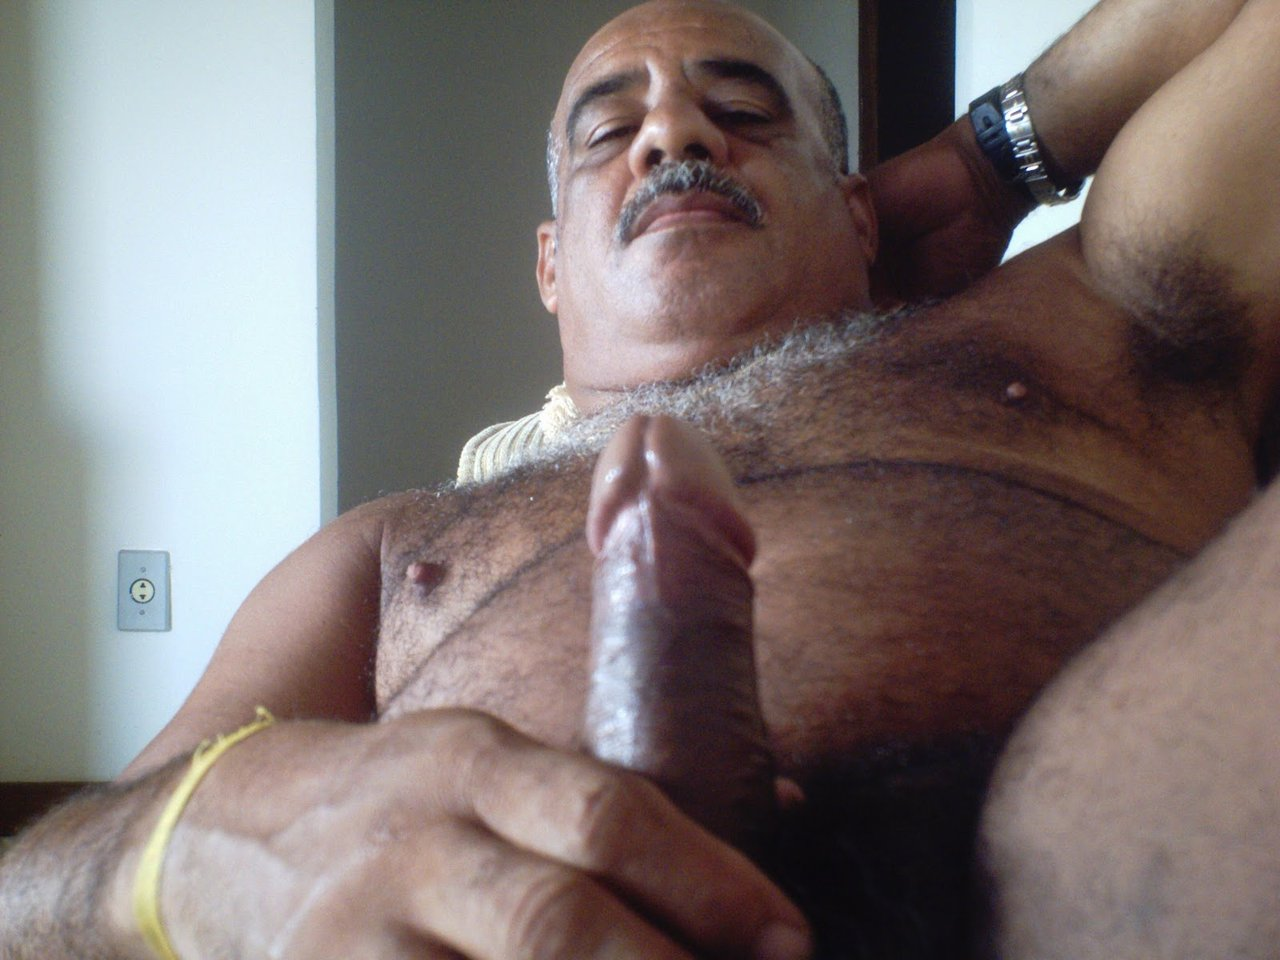 from Nicholas indian gay men porn